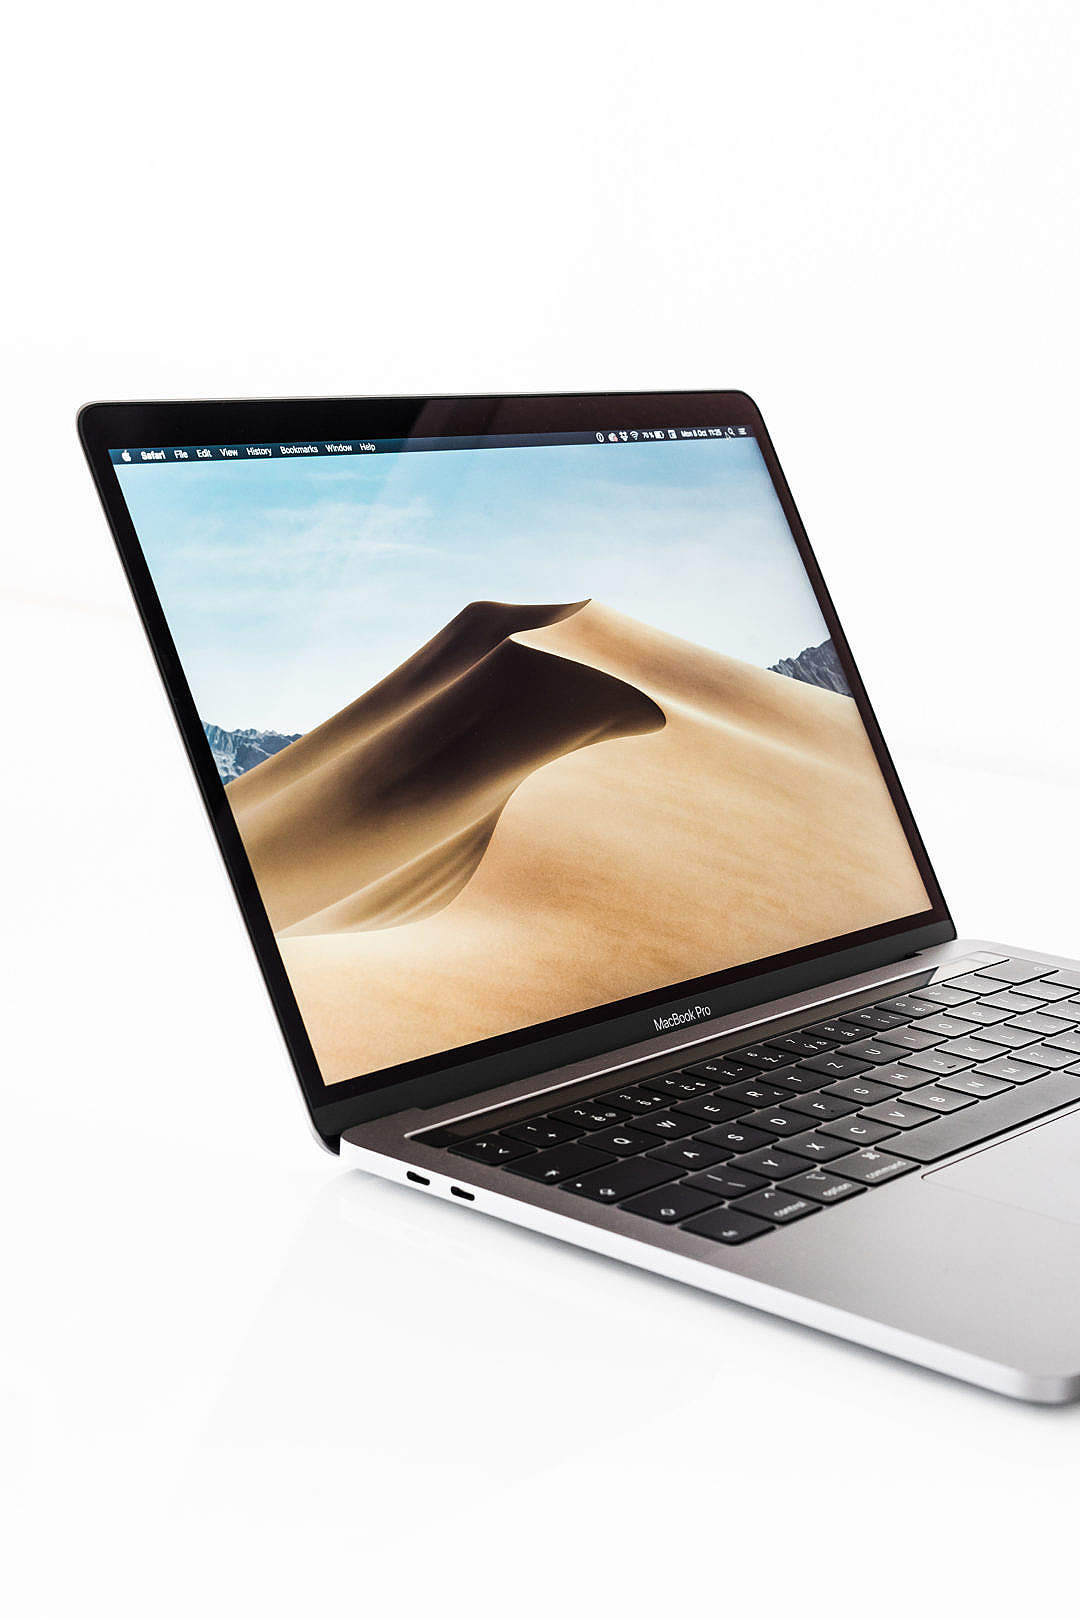 Download Modern Laptop MacBook Pro Mockup Close Up FREE Stock Photo